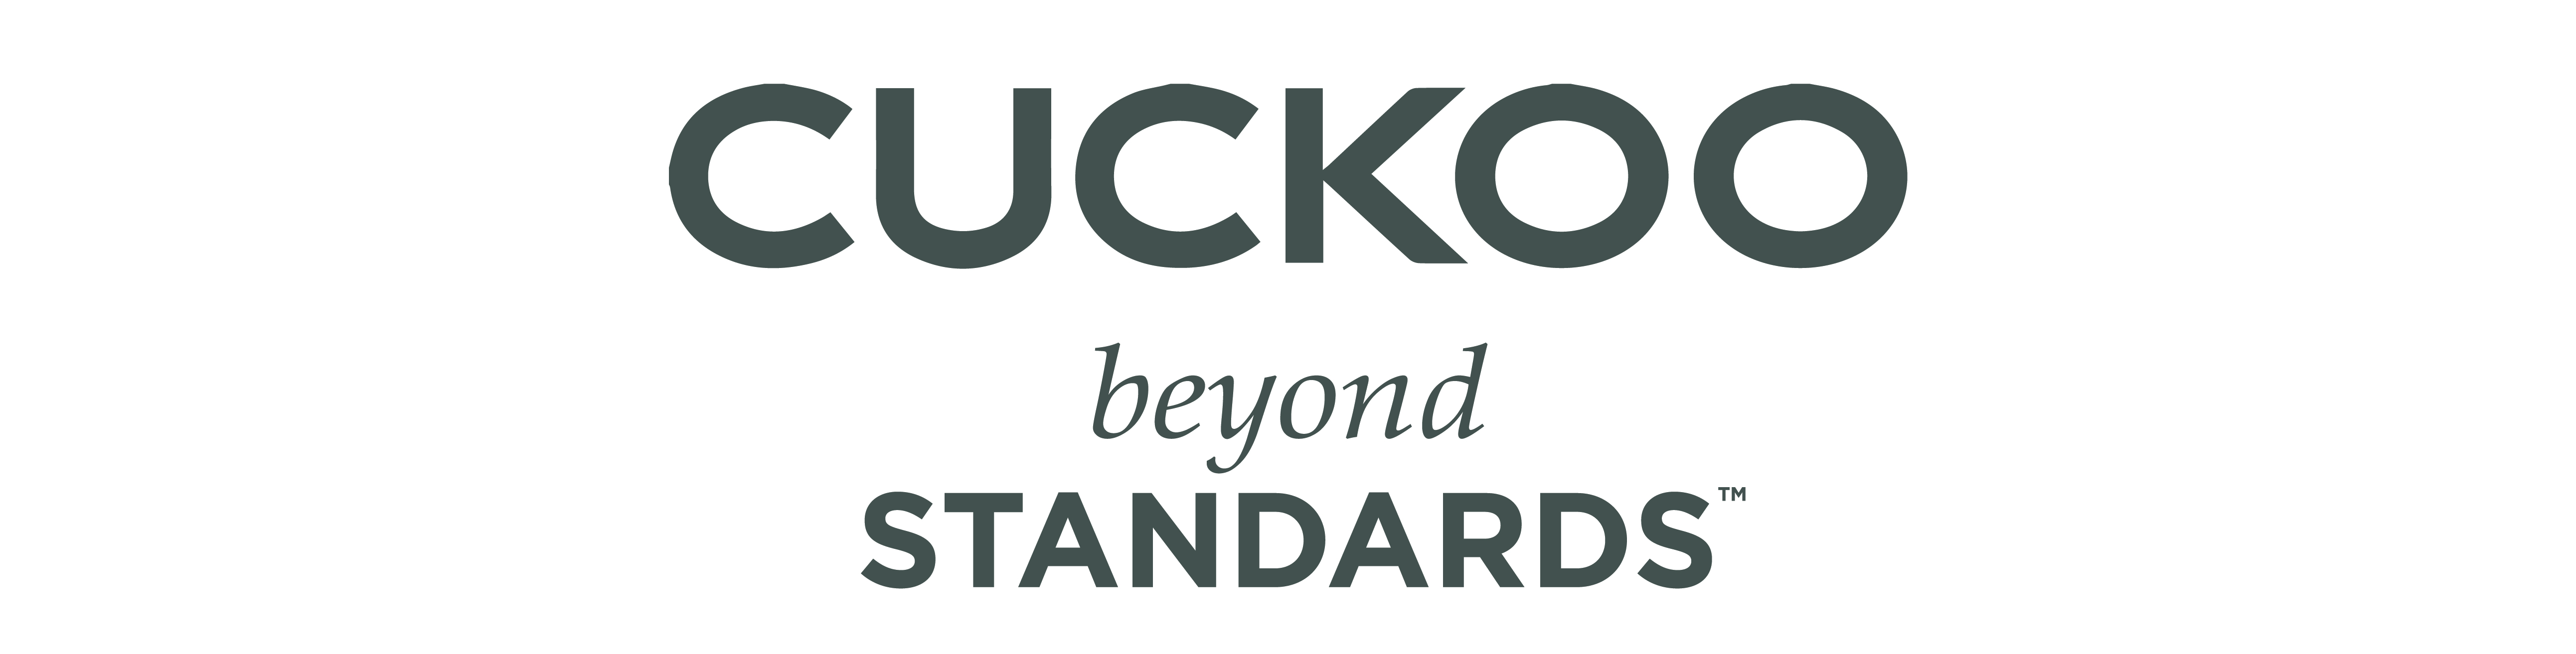 Cuckoo Official Store